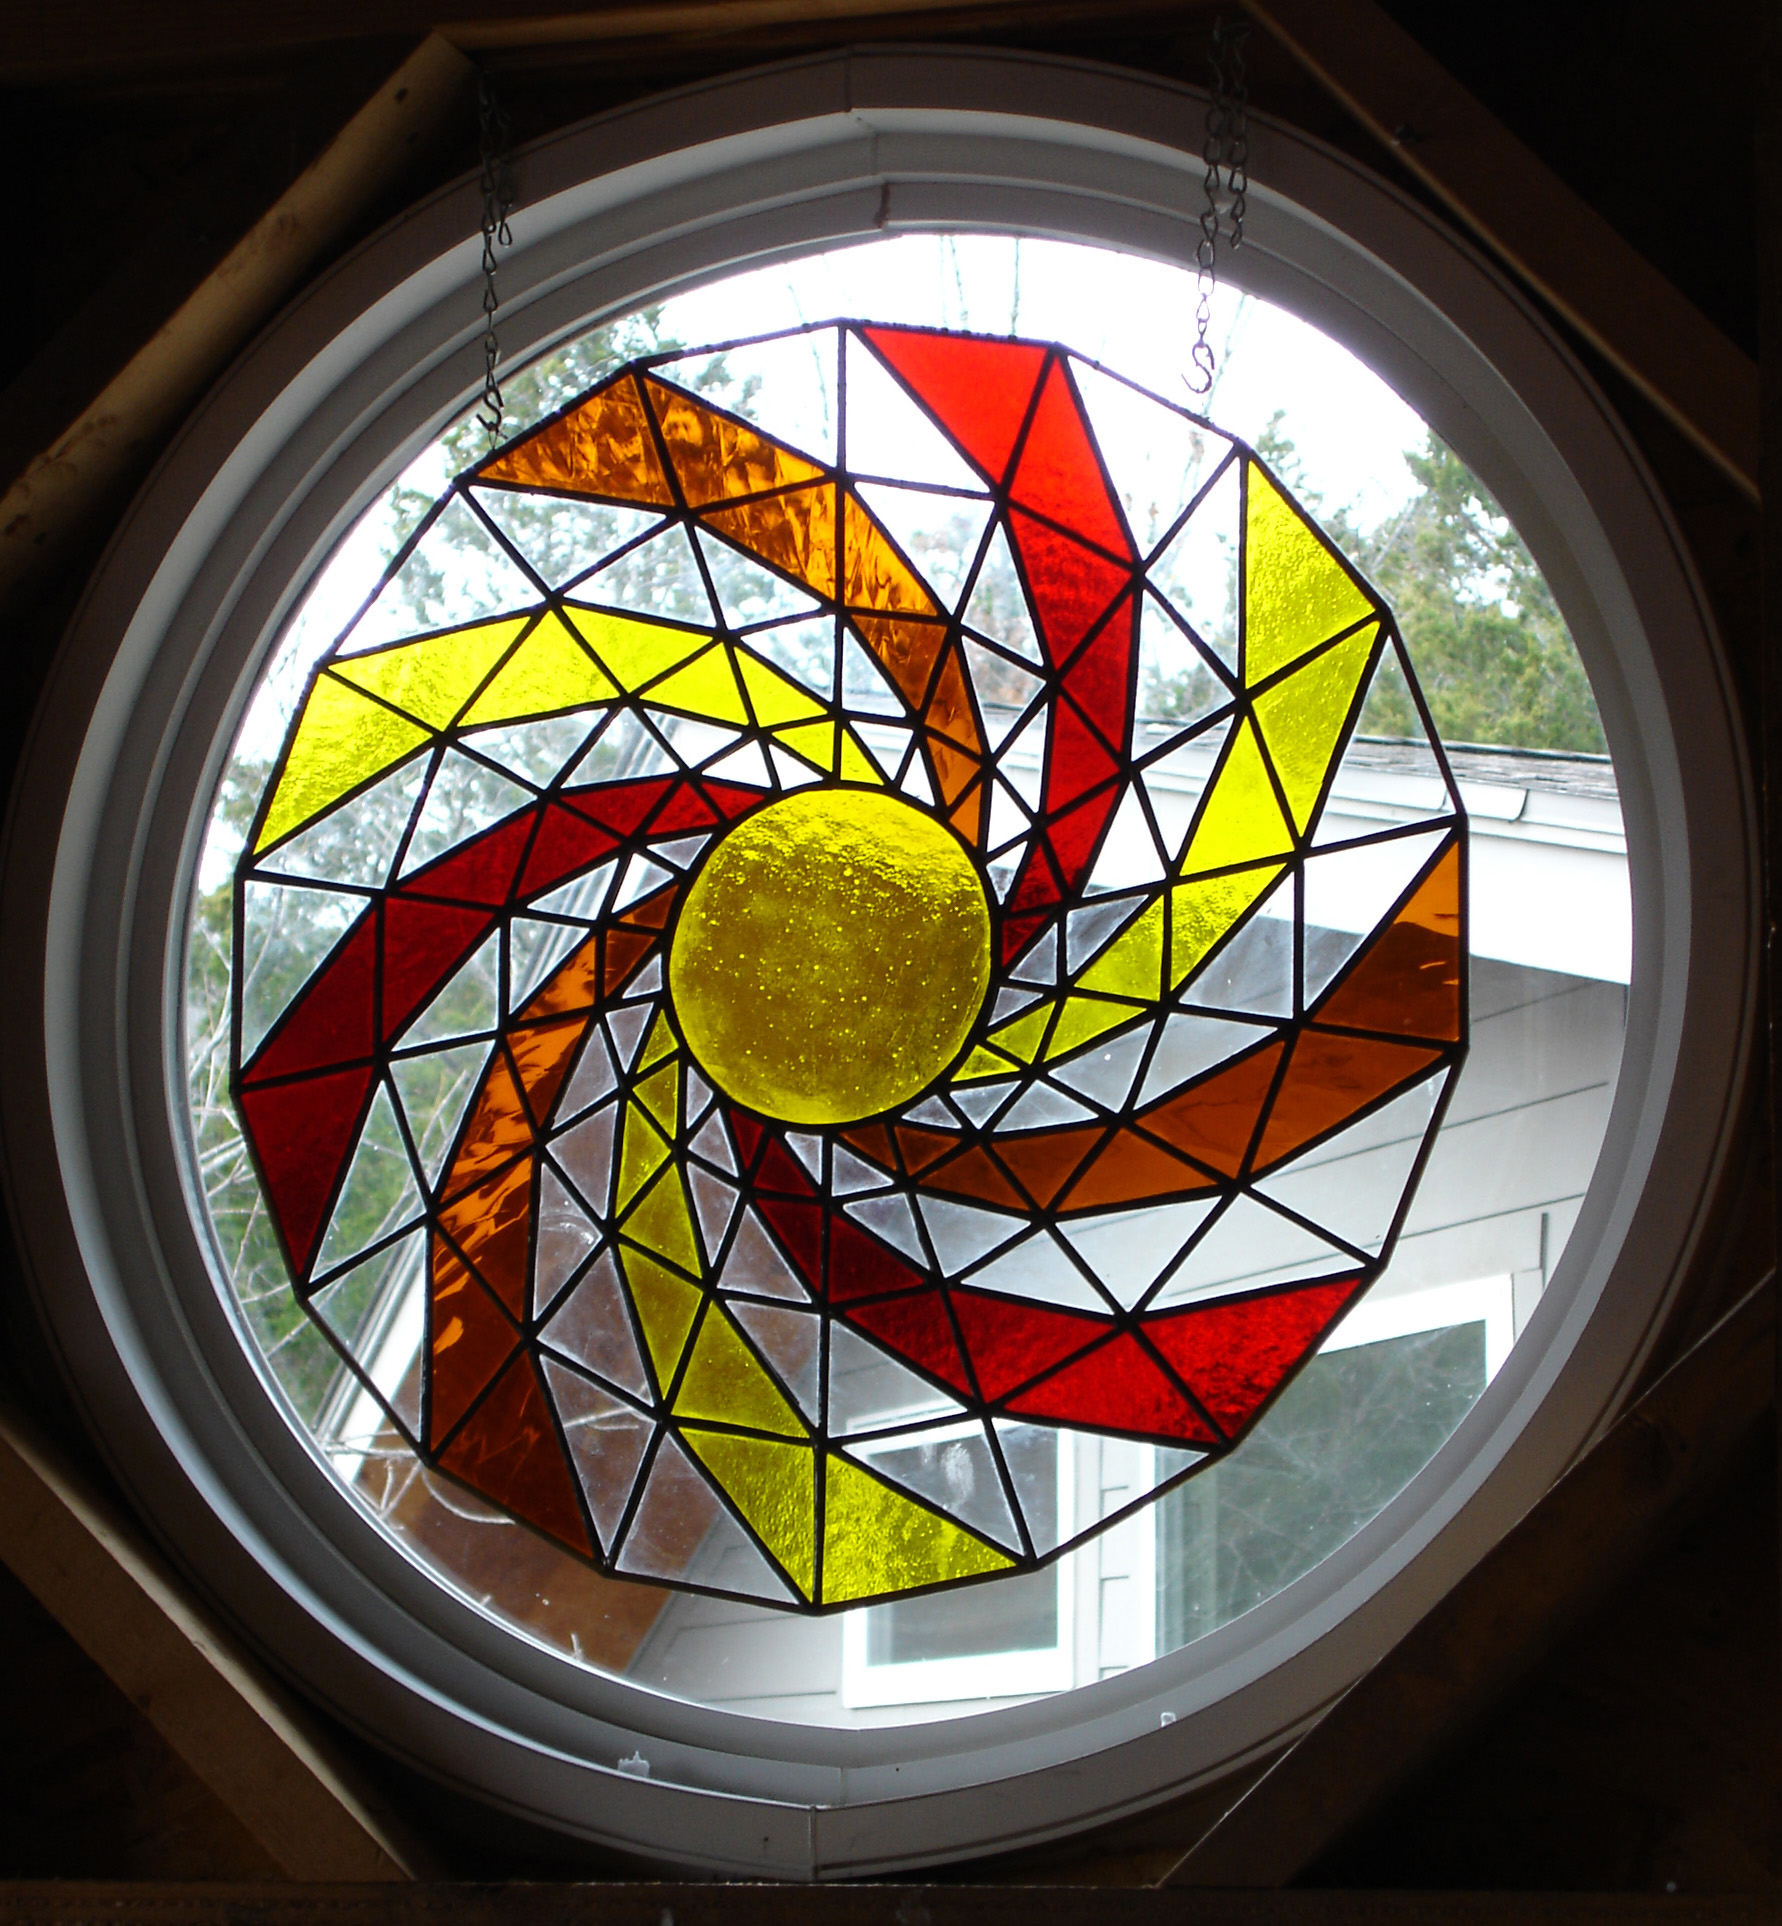 Stain glass circle by Kent Johnson